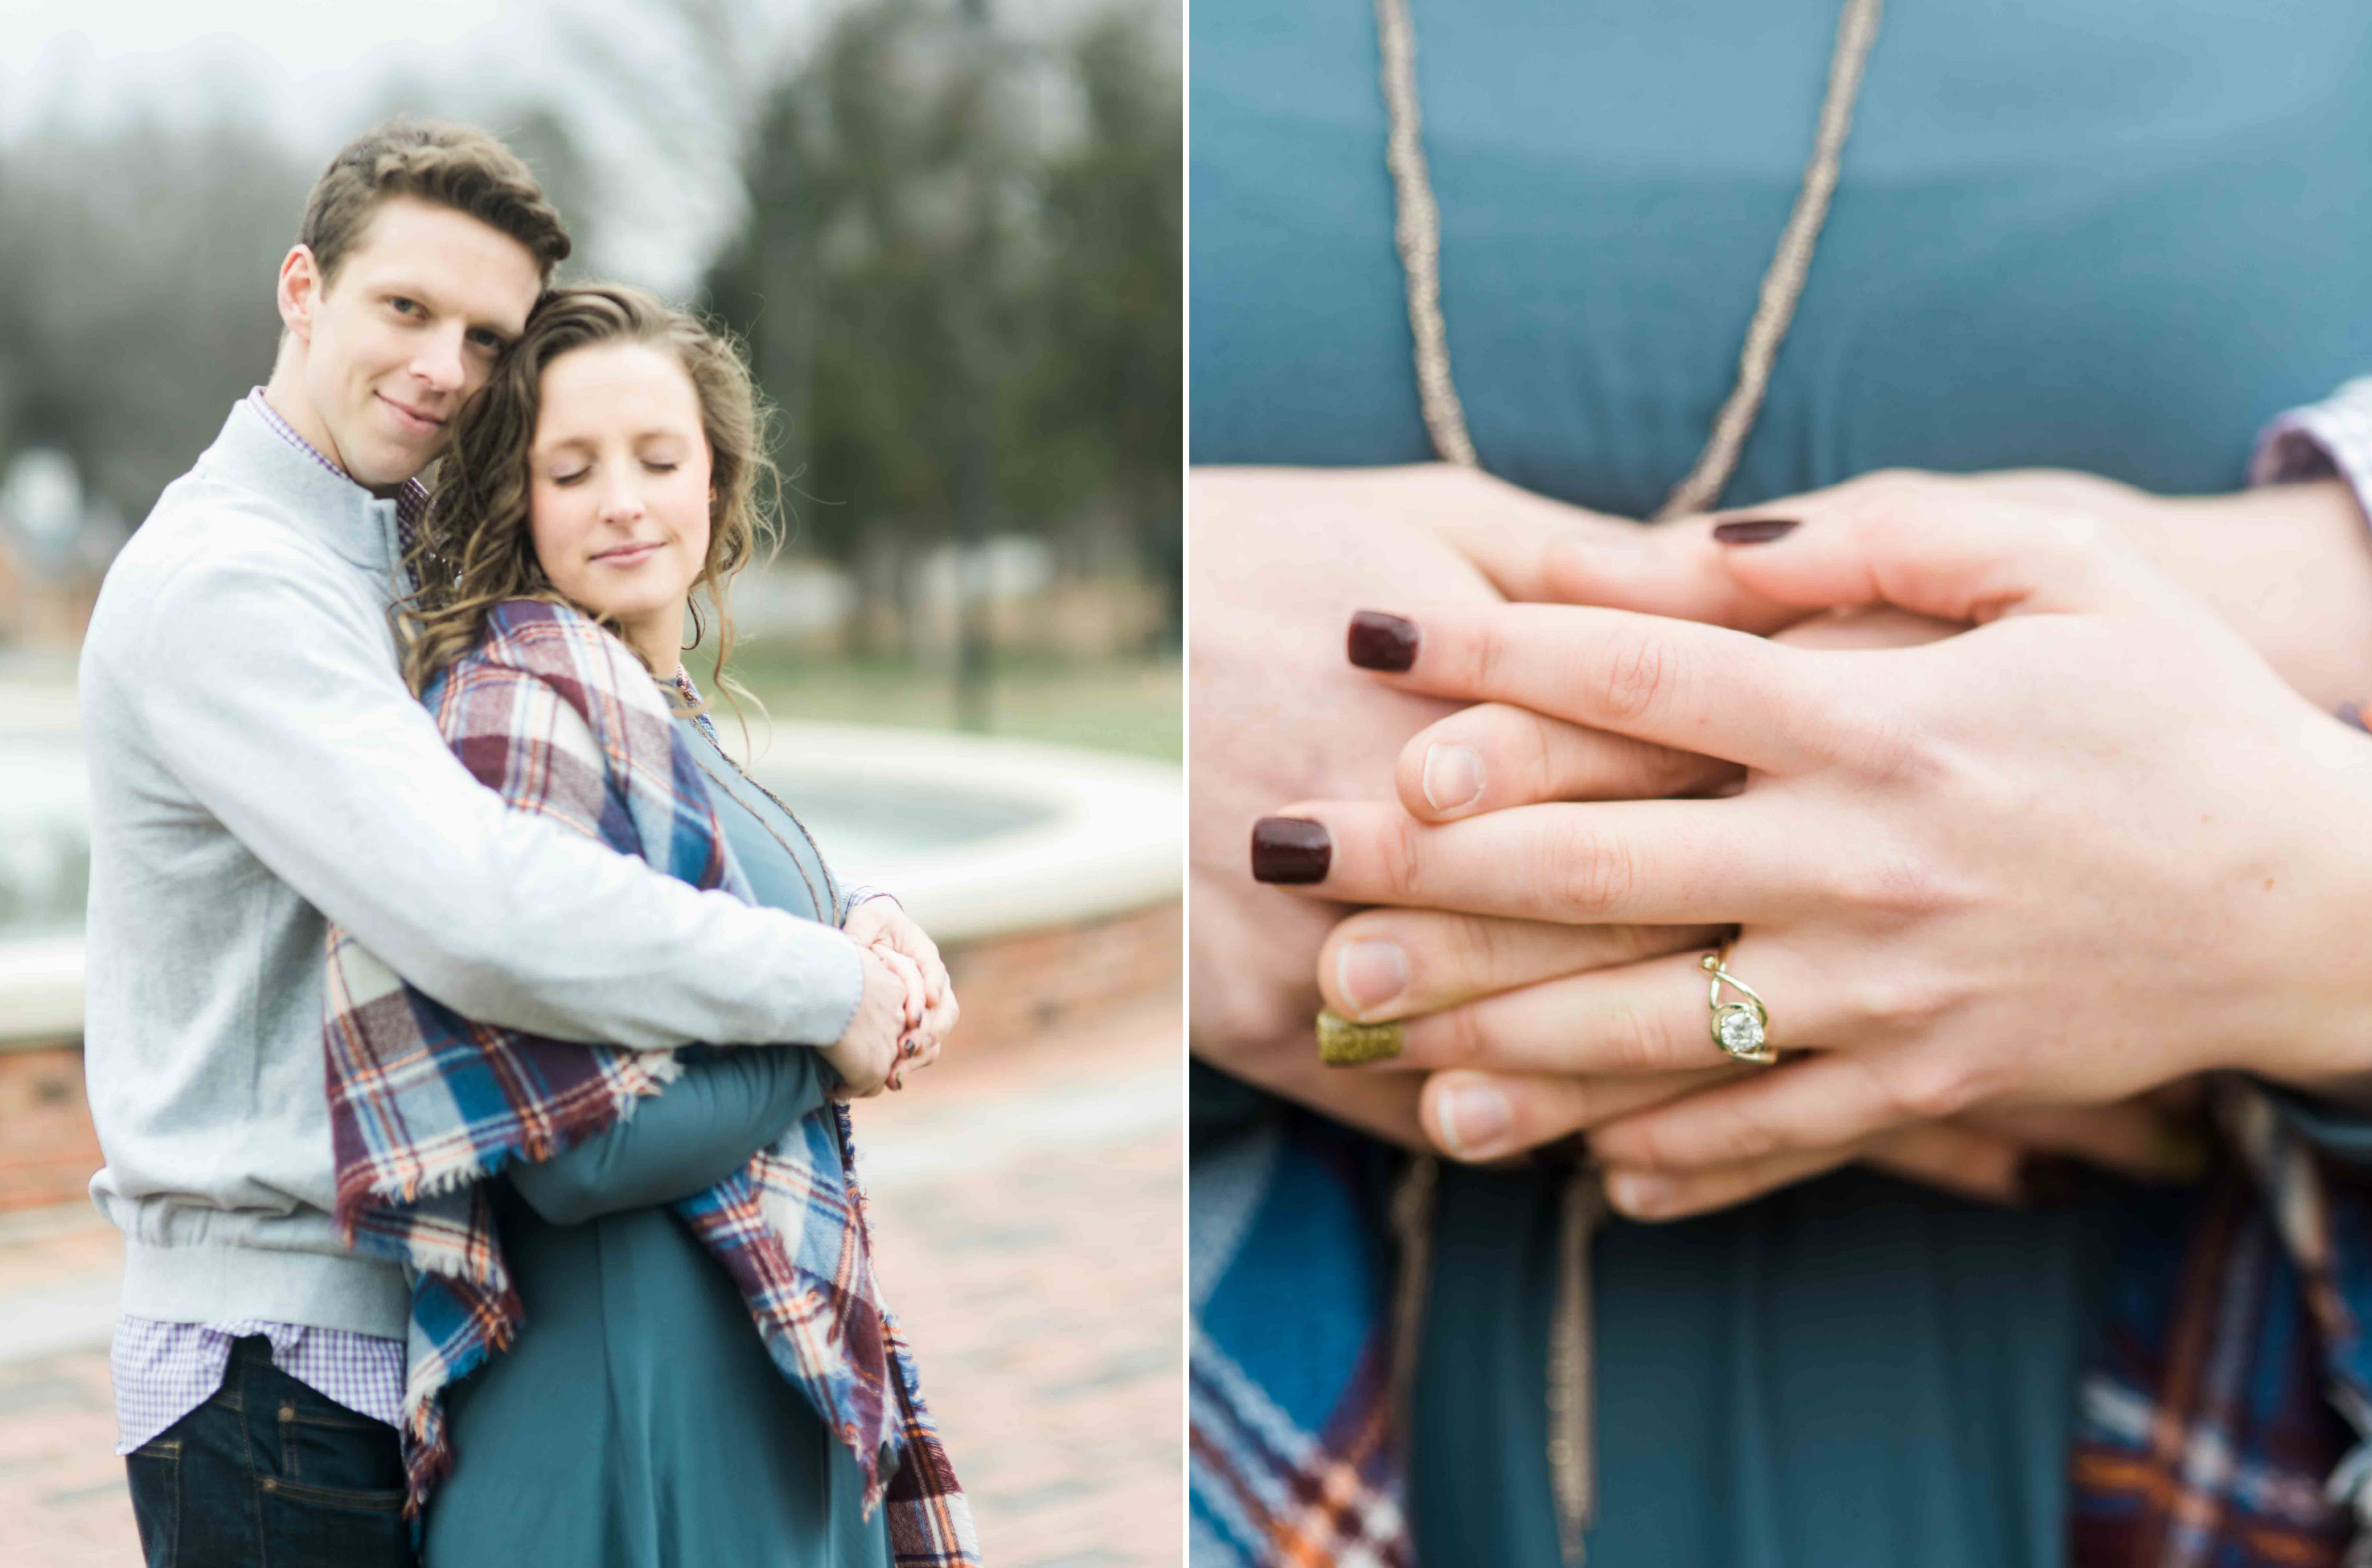 plaid scarf teal dress engagement wardrobe outfit